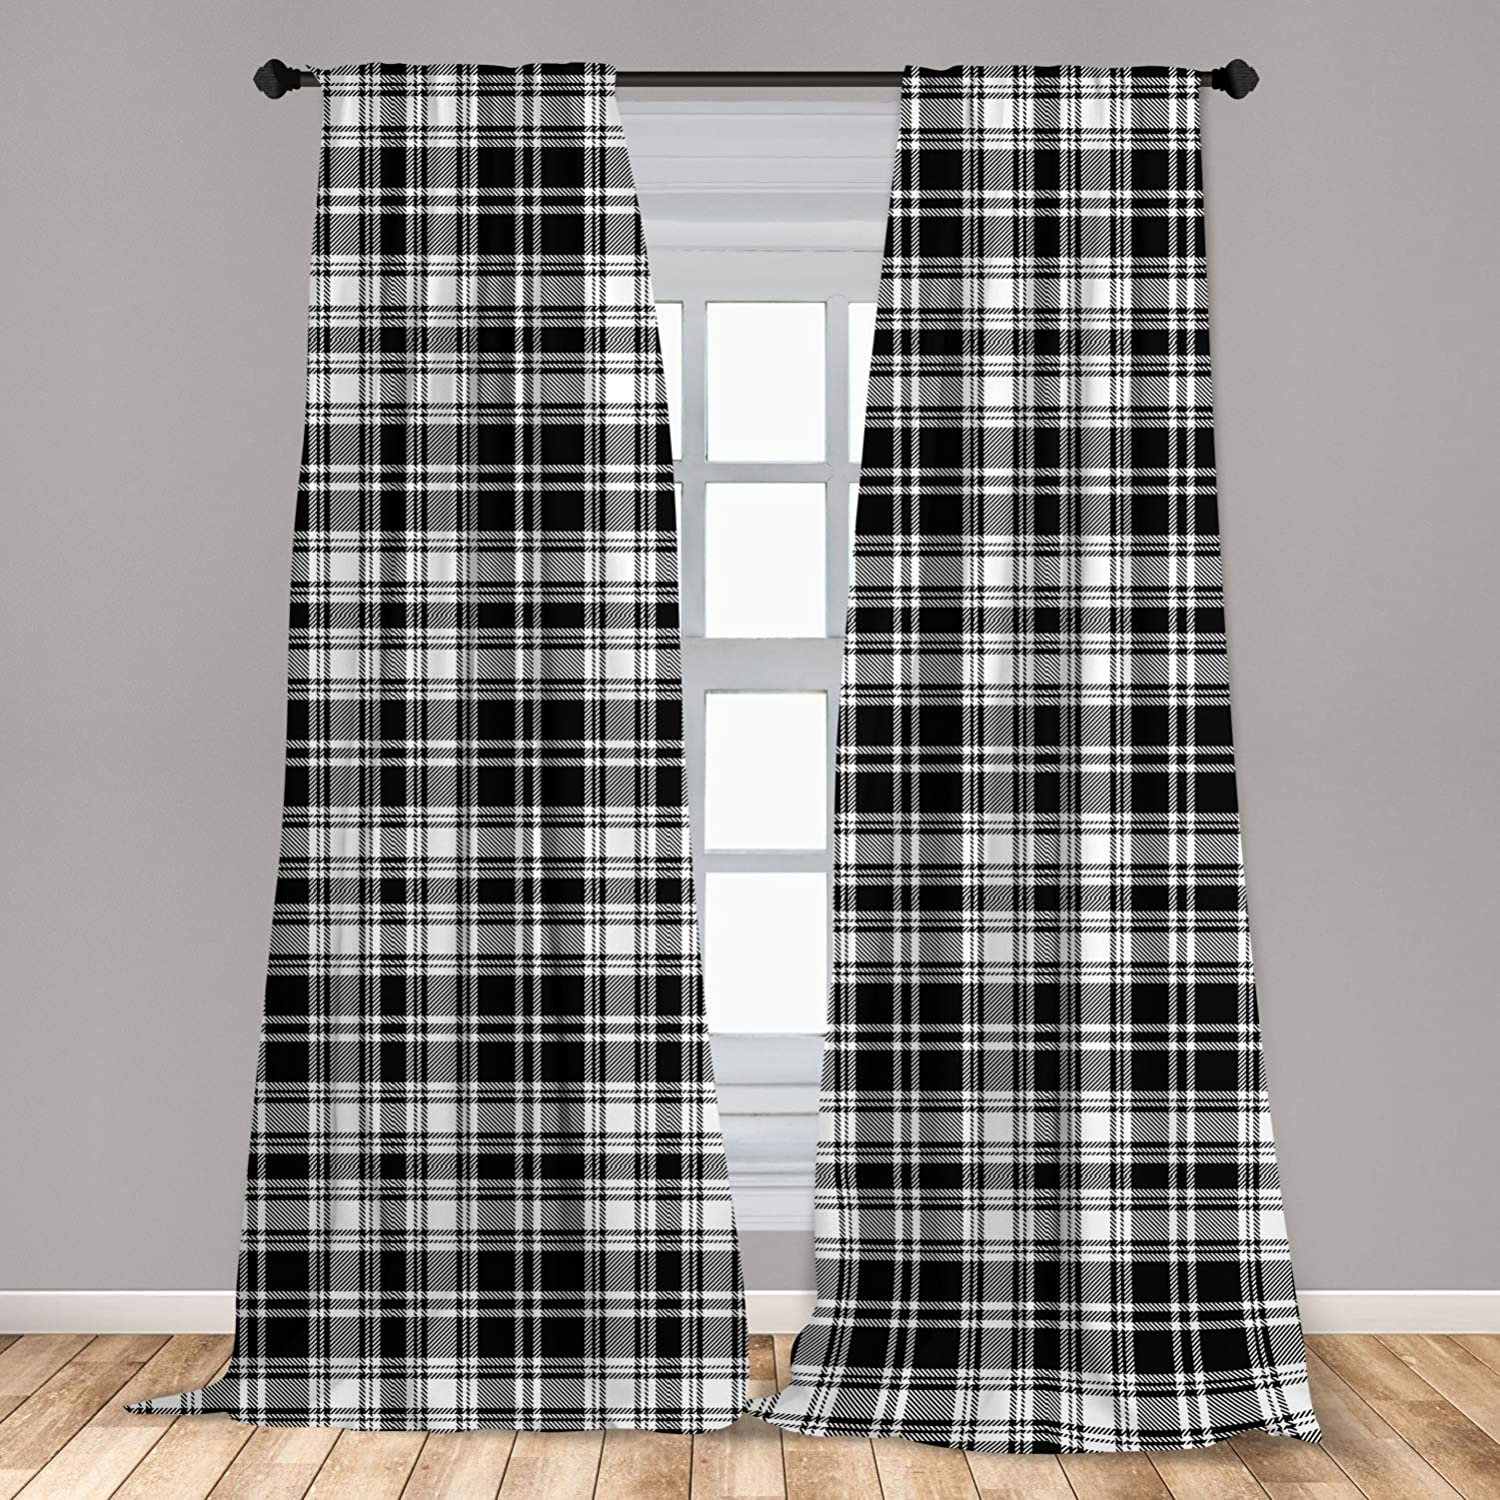 Ambesonne Abstract Curtains 2 Panel Set, British Tartan Celtic Pattern with Vertical Horizontal Symmetric Stripes Image, Lightweight Window Treatment Living Room Bedroom Decor, 56